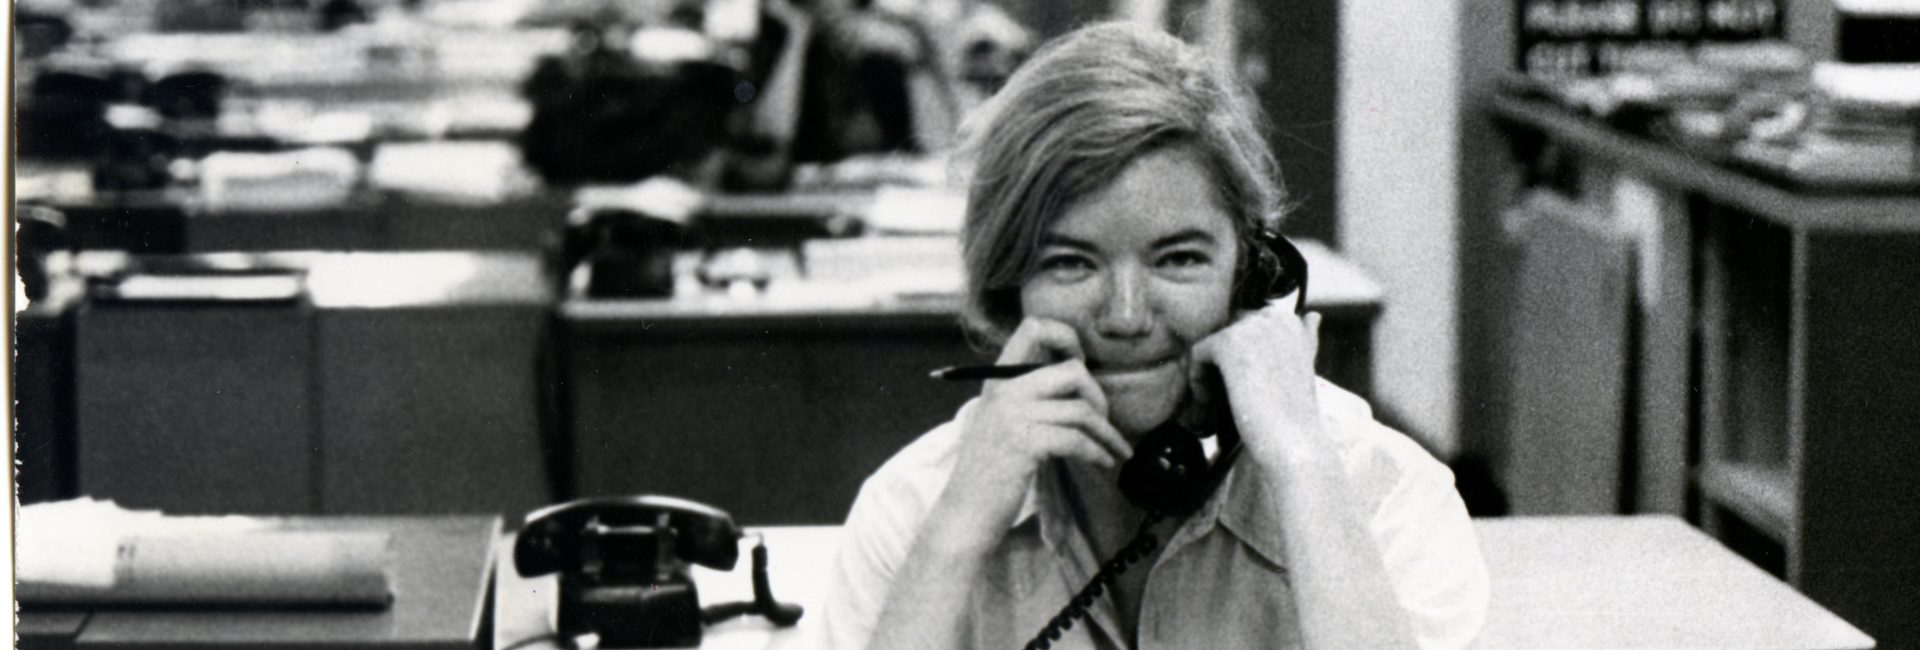 Molly Ivins: A Unique Political Persona from Texas